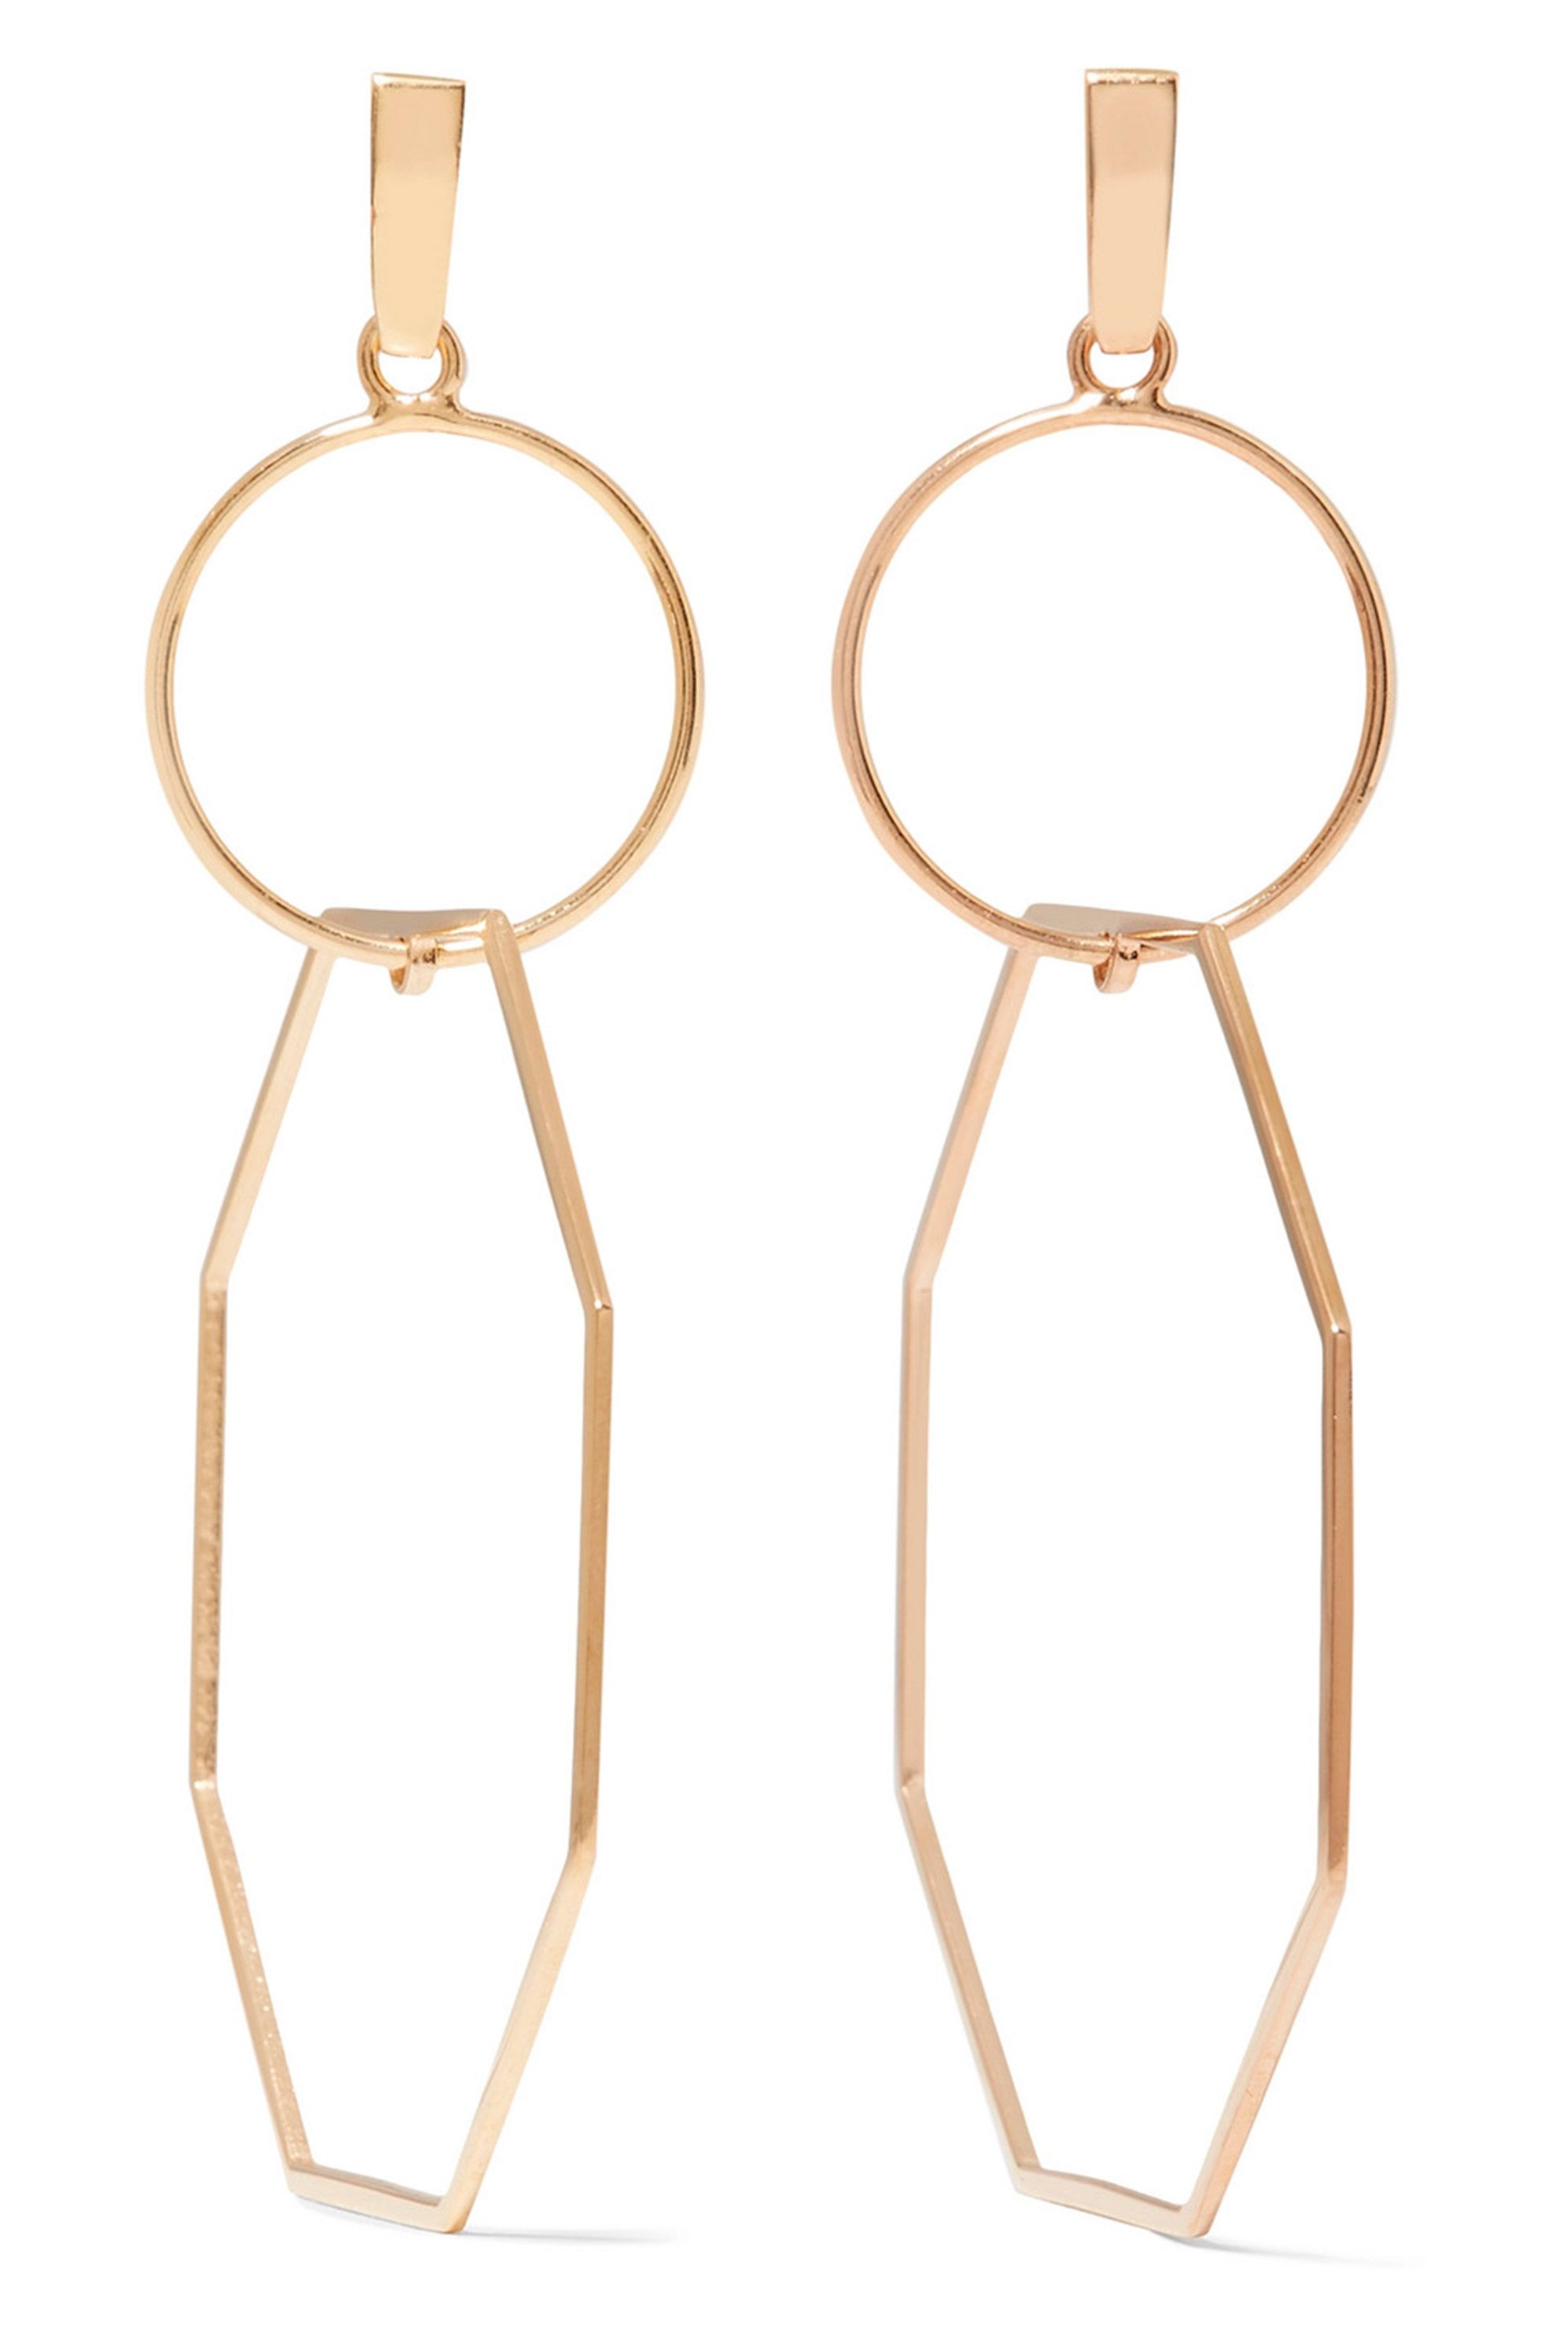 geometric pairs fashion ensemble of shweitzer that best wear what asymmetric uk elevate to any will earrings